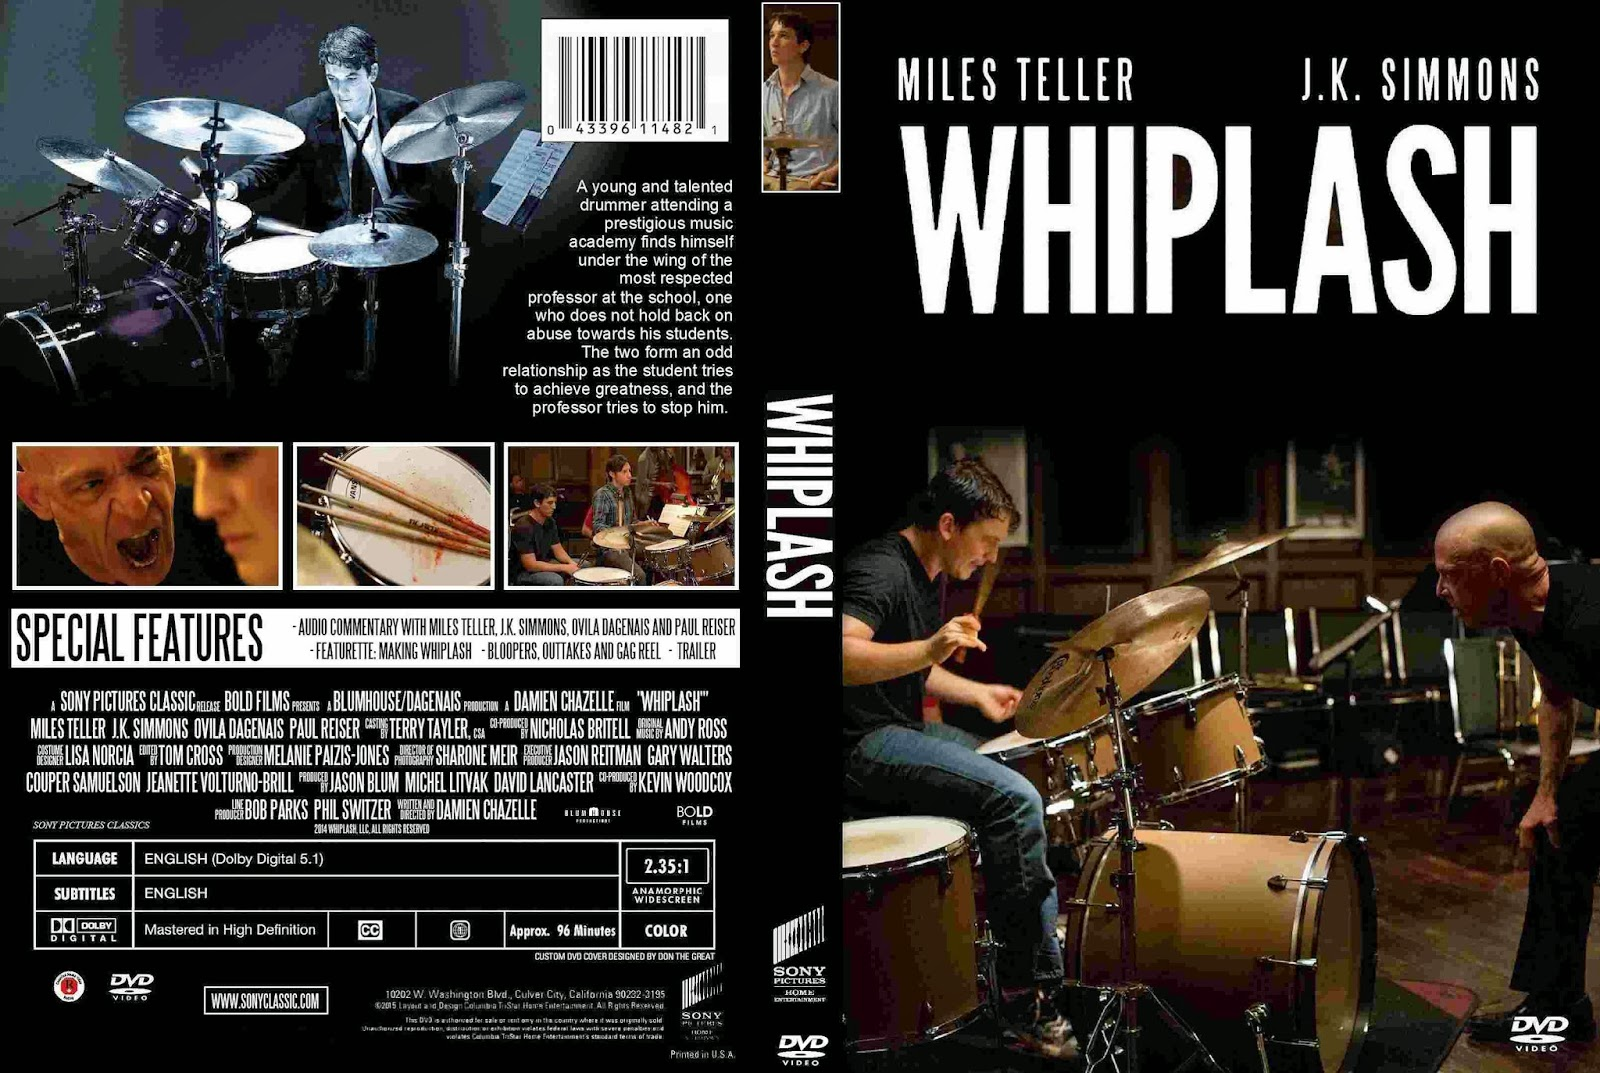 Whiplash 2014 movie